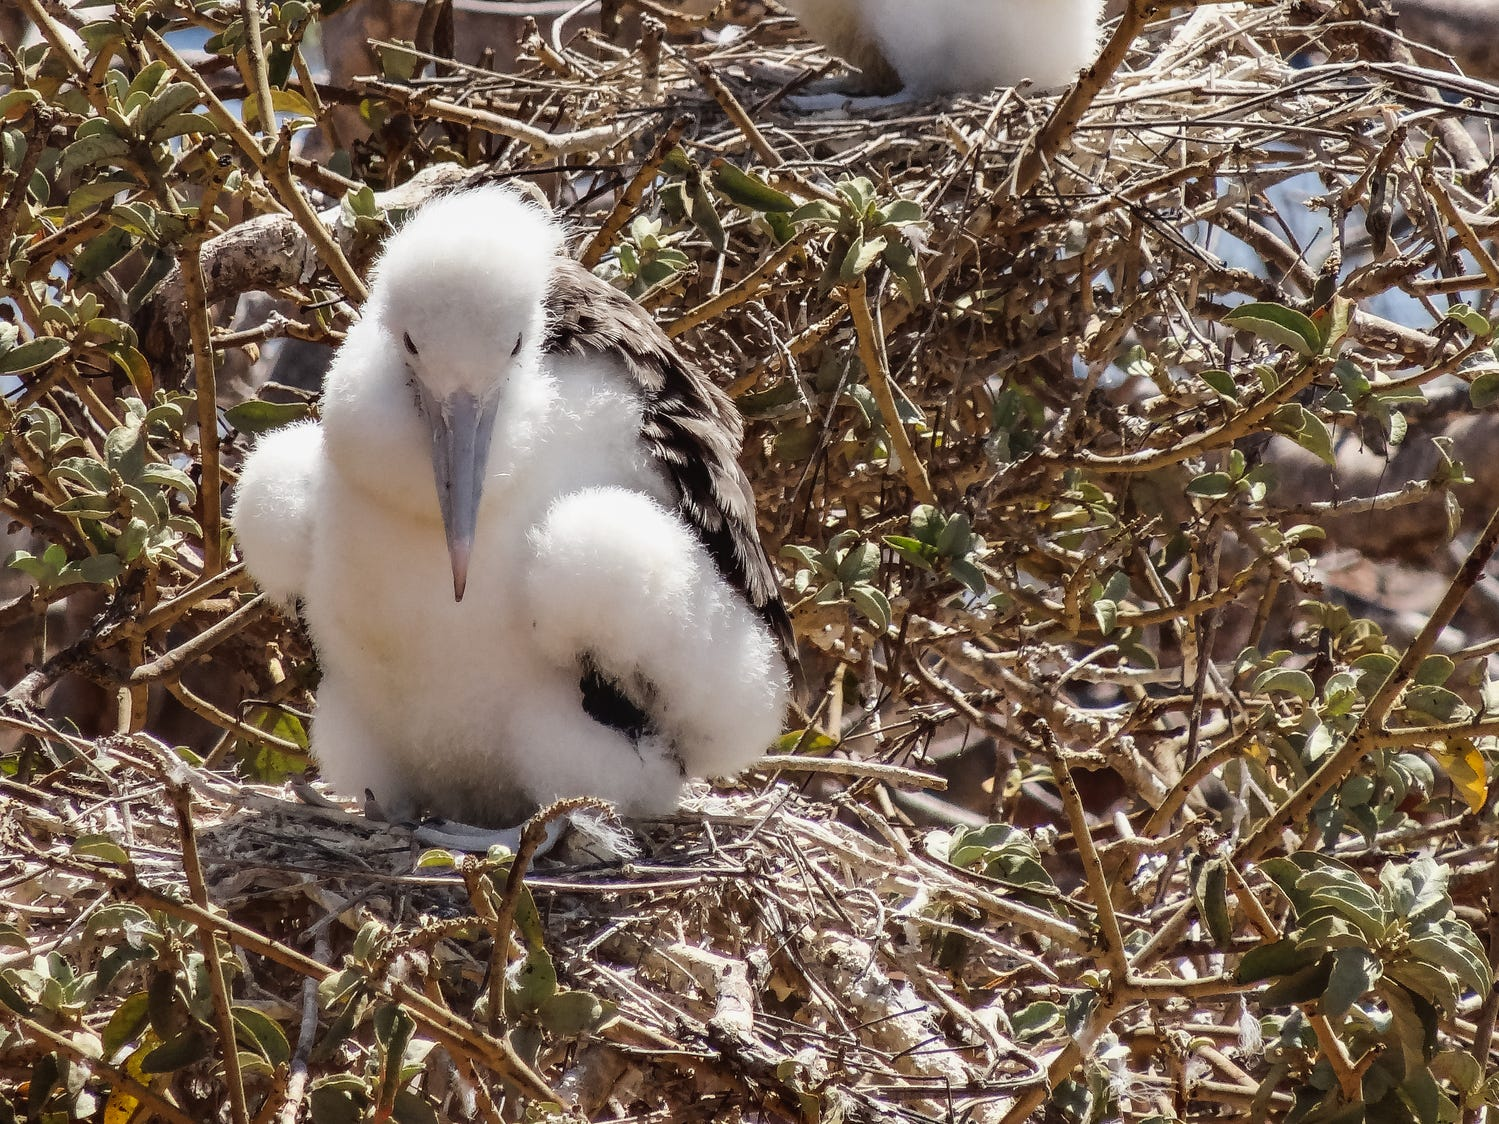 Great frigatebird chicks in the Galapagos Islands, Ecuador.